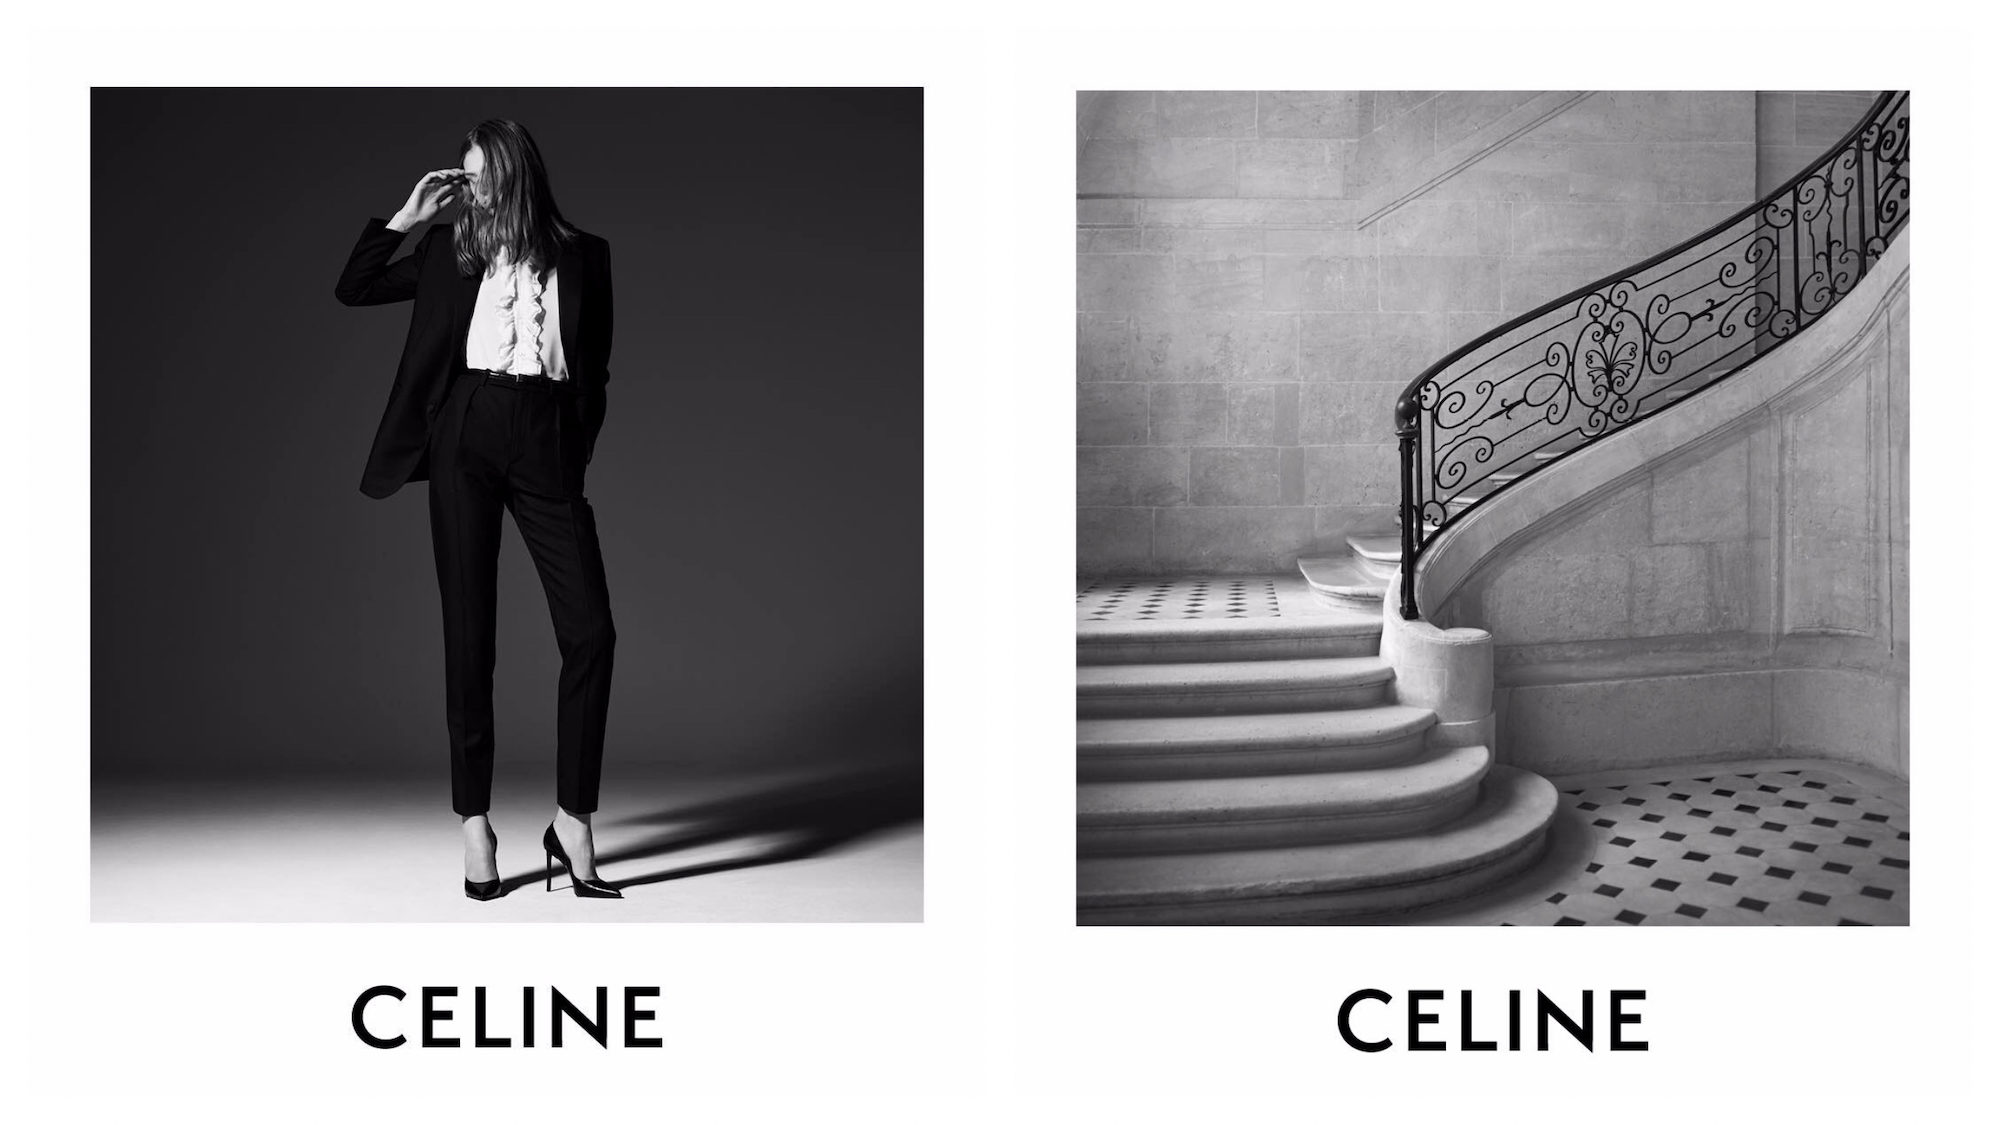 Celine is the name to know when shopping in Paris for its sleek suits (left) but also the interiors of the flagship store alone, like this period stone staircase (right).